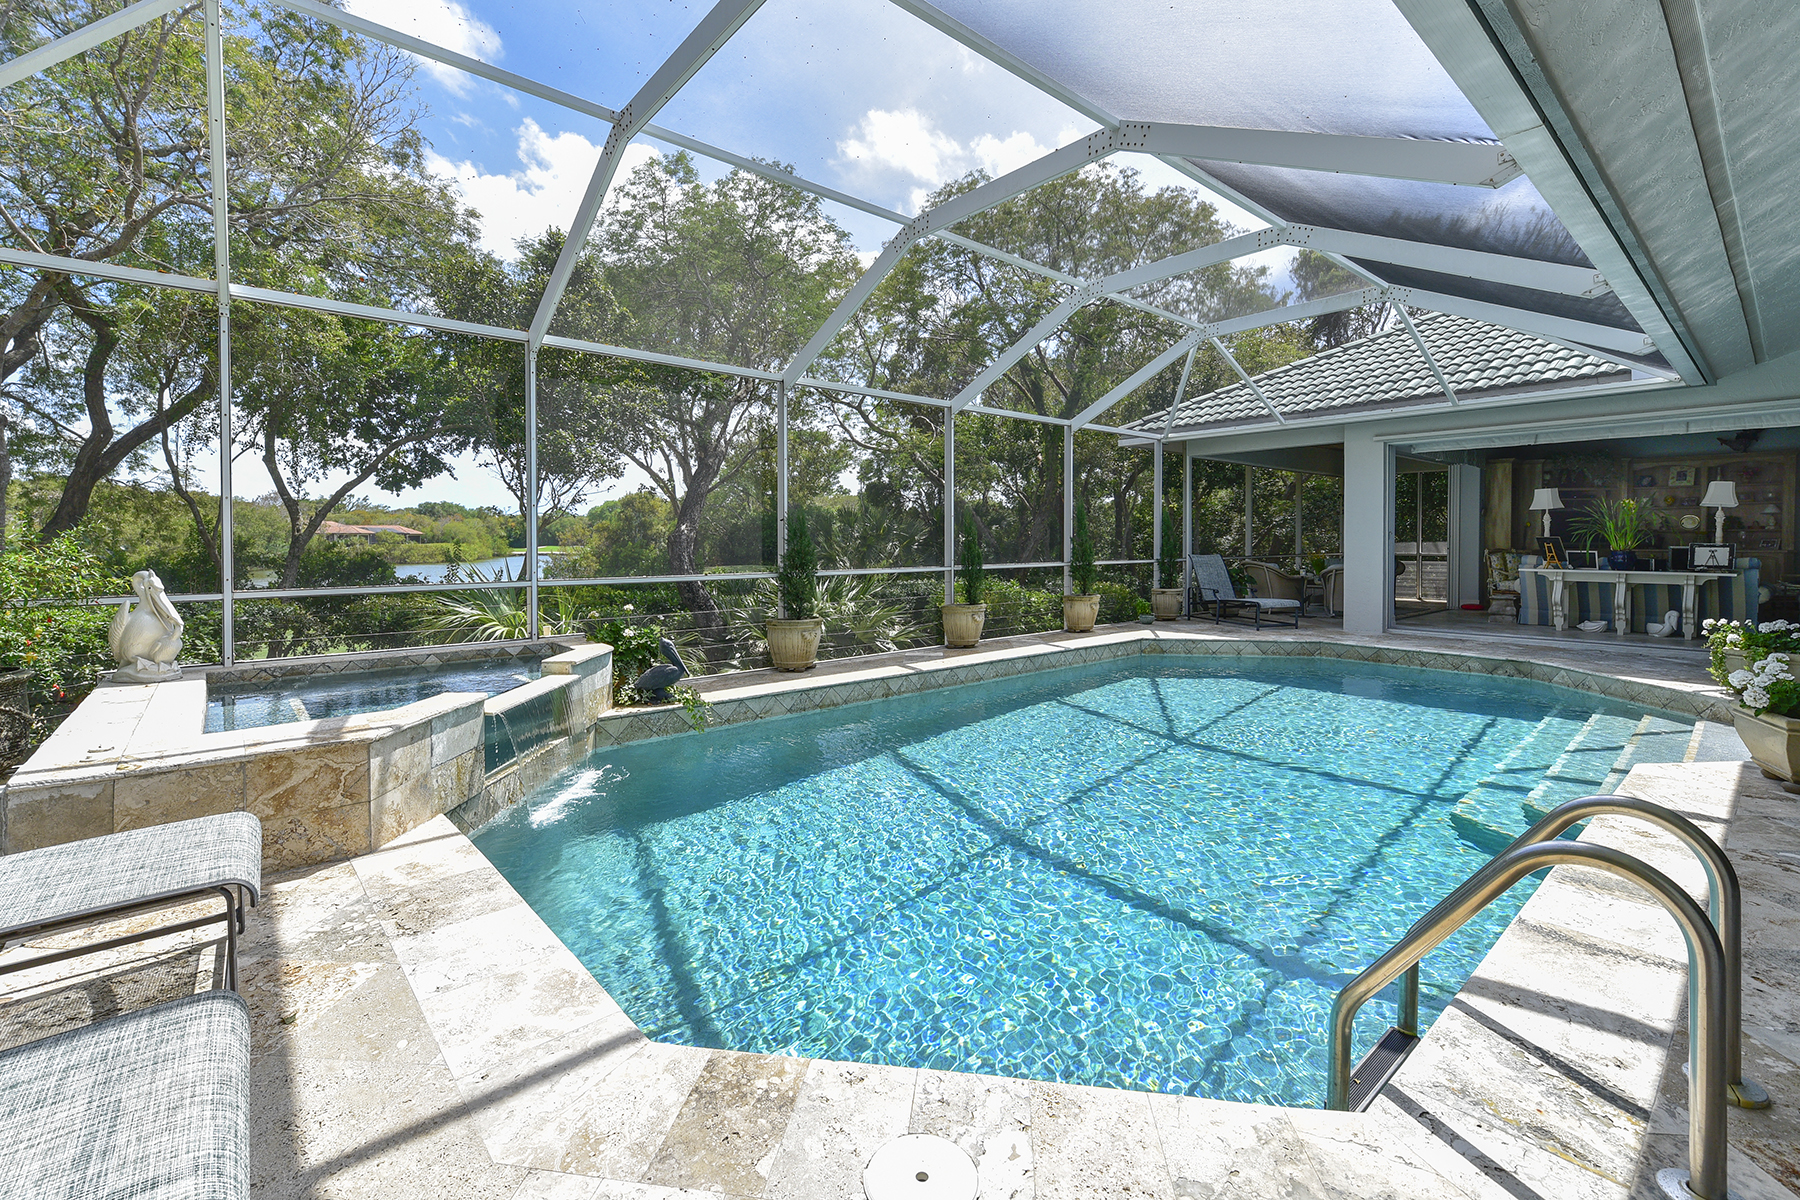 Single Family Home for Sale at Golf and Lakefront View Home at Ocean Reef 18 Cinnamon Bark Lane Ocean Reef Community, Key Largo, Florida, 33037 United States